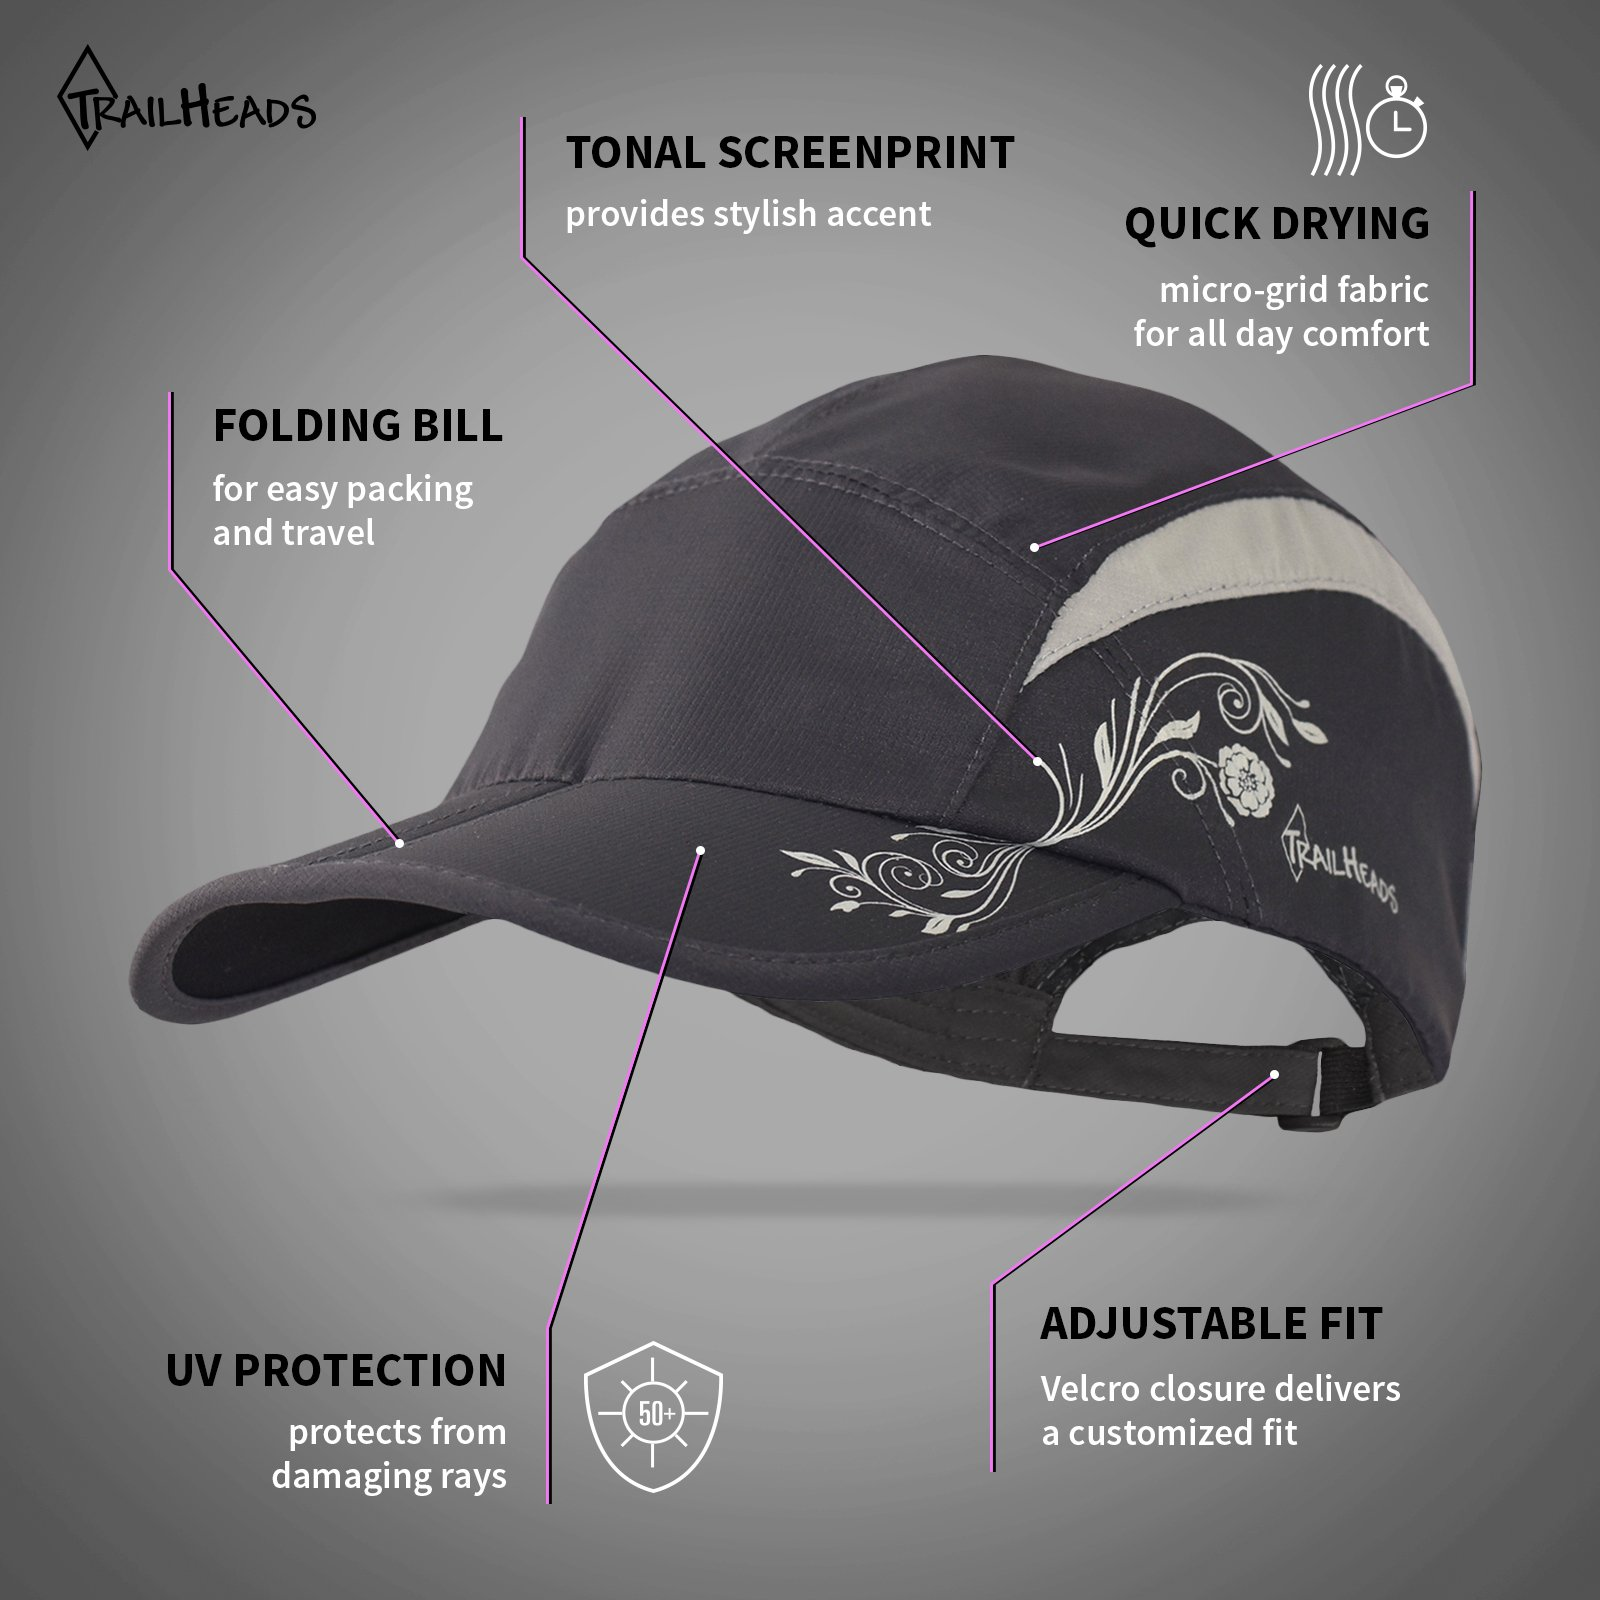 TrailHeads Lightweight Travel Hat | Summer Running Cap for Women | Folding Hat with UV Protection - Medium/Large by TrailHeads (Image #2)